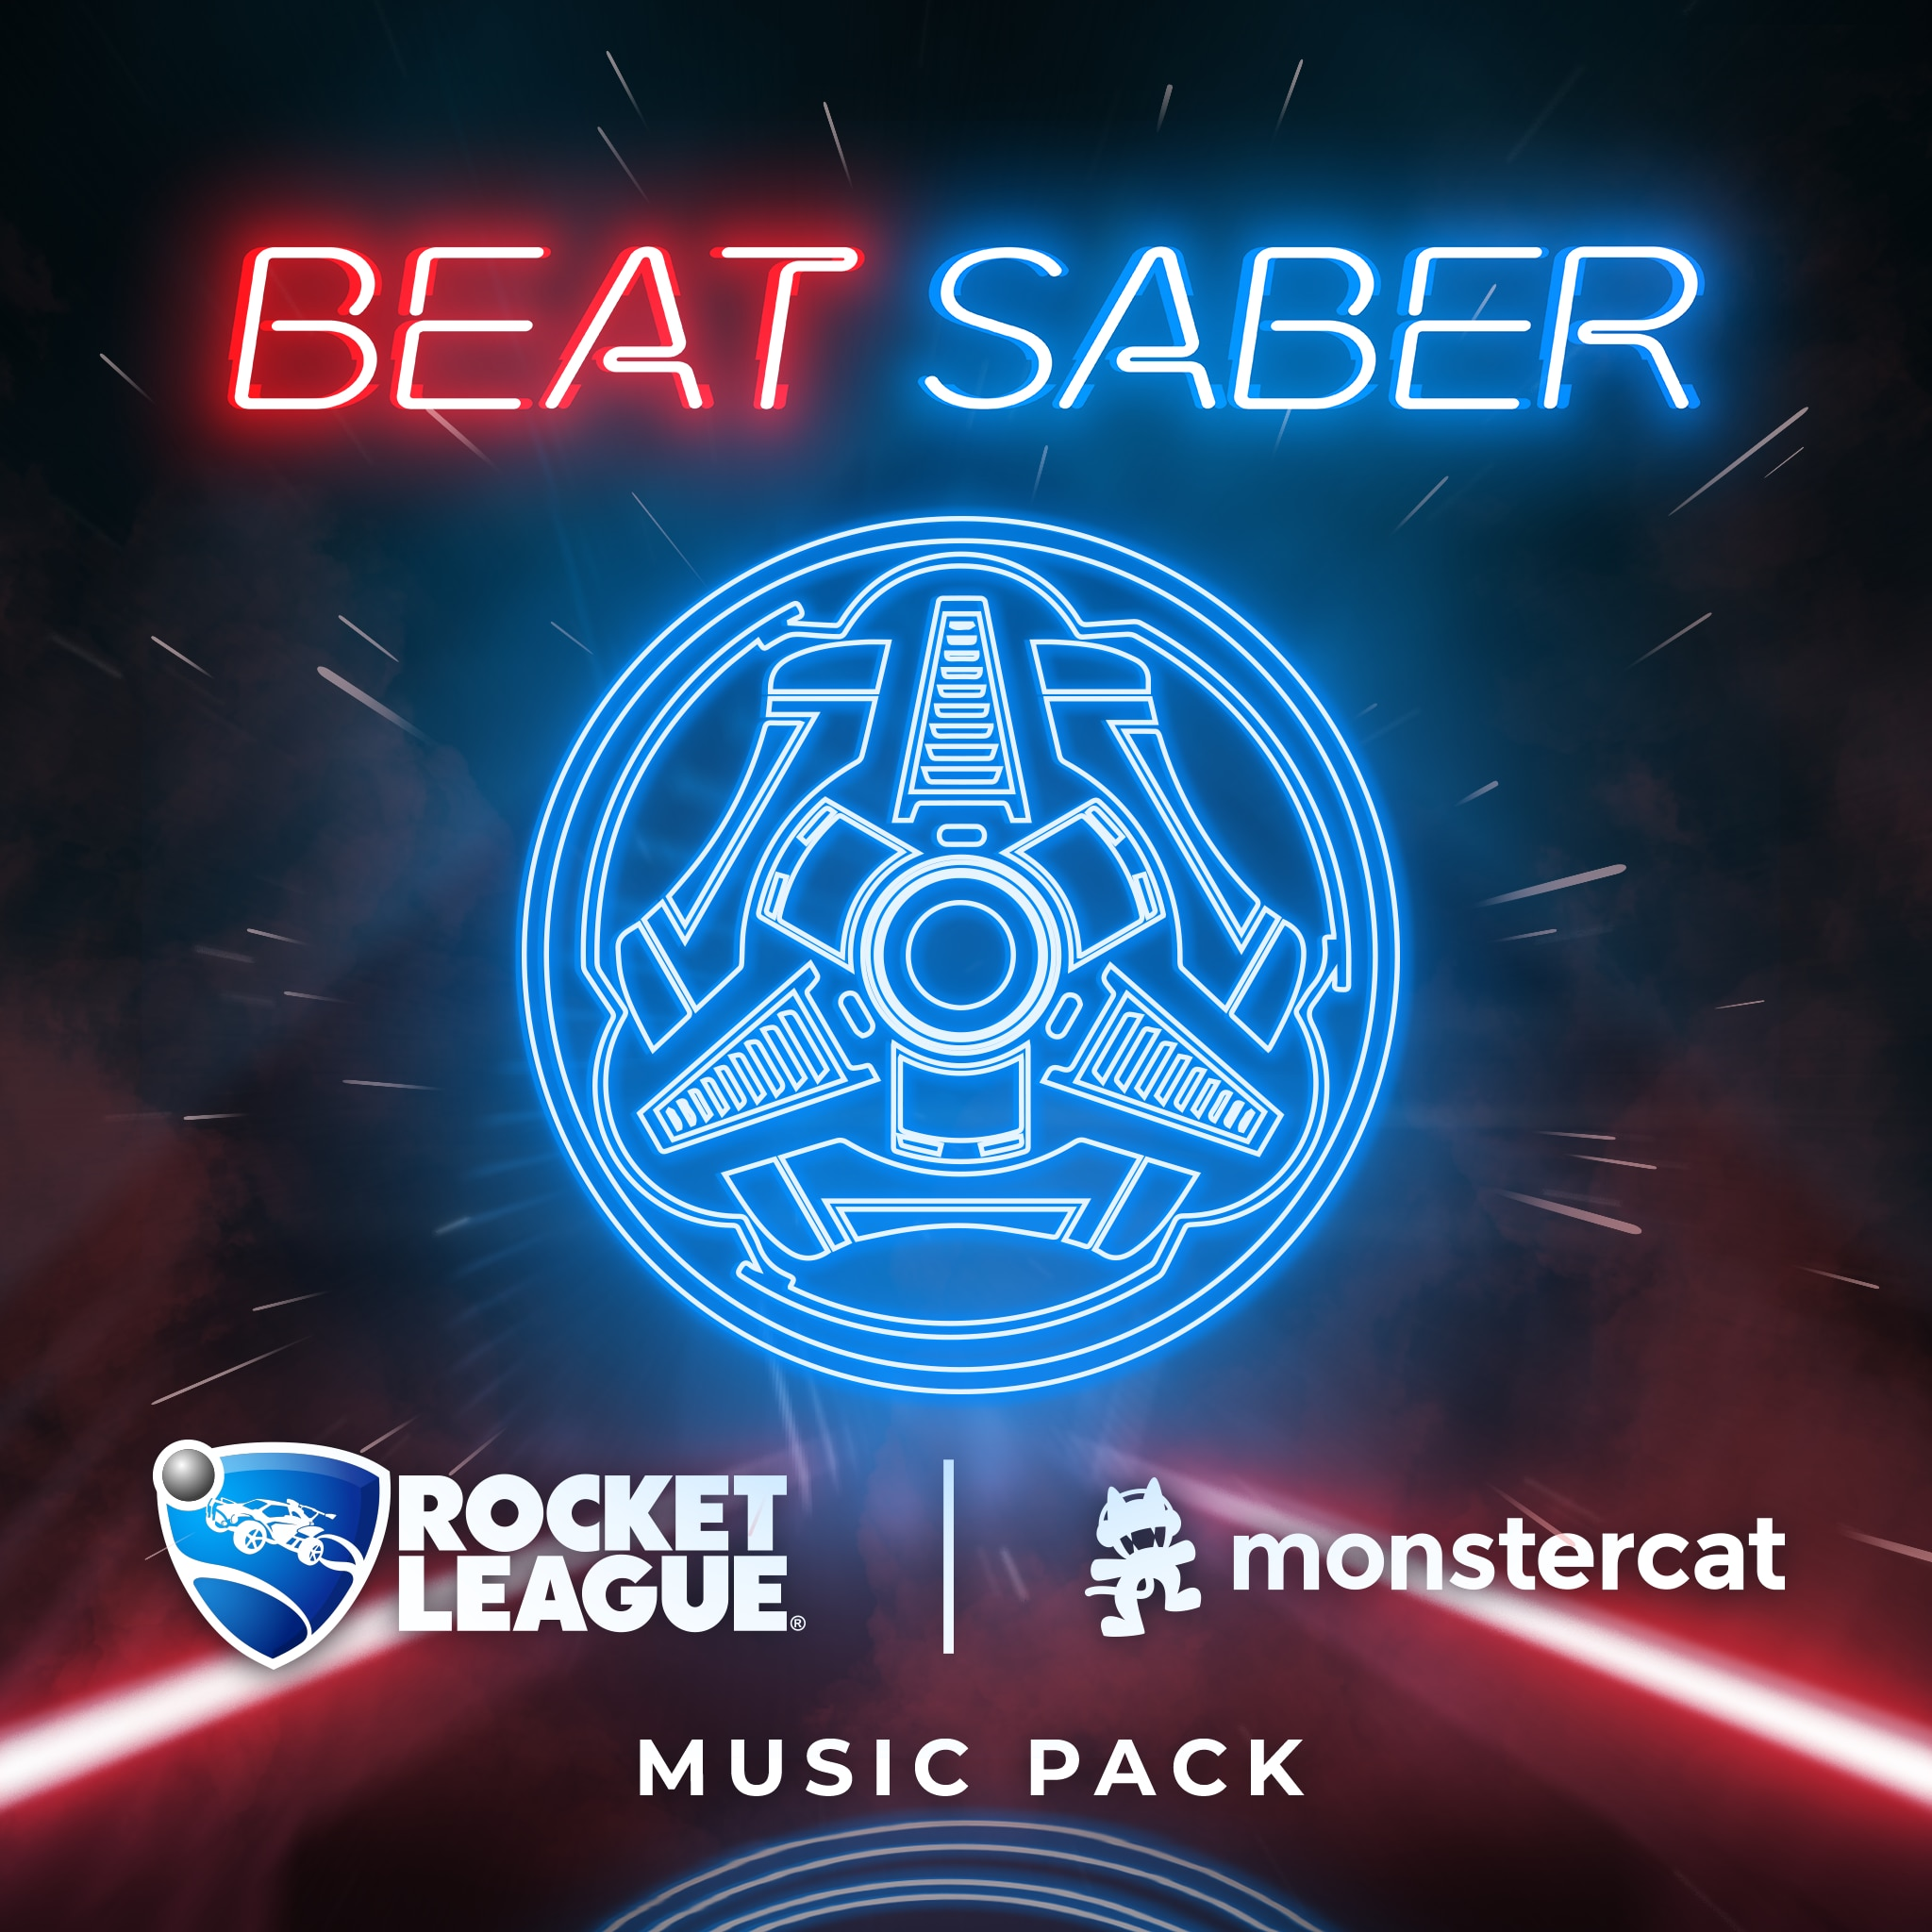 Beat Saber: Rocket League x Monstercat Music Pack